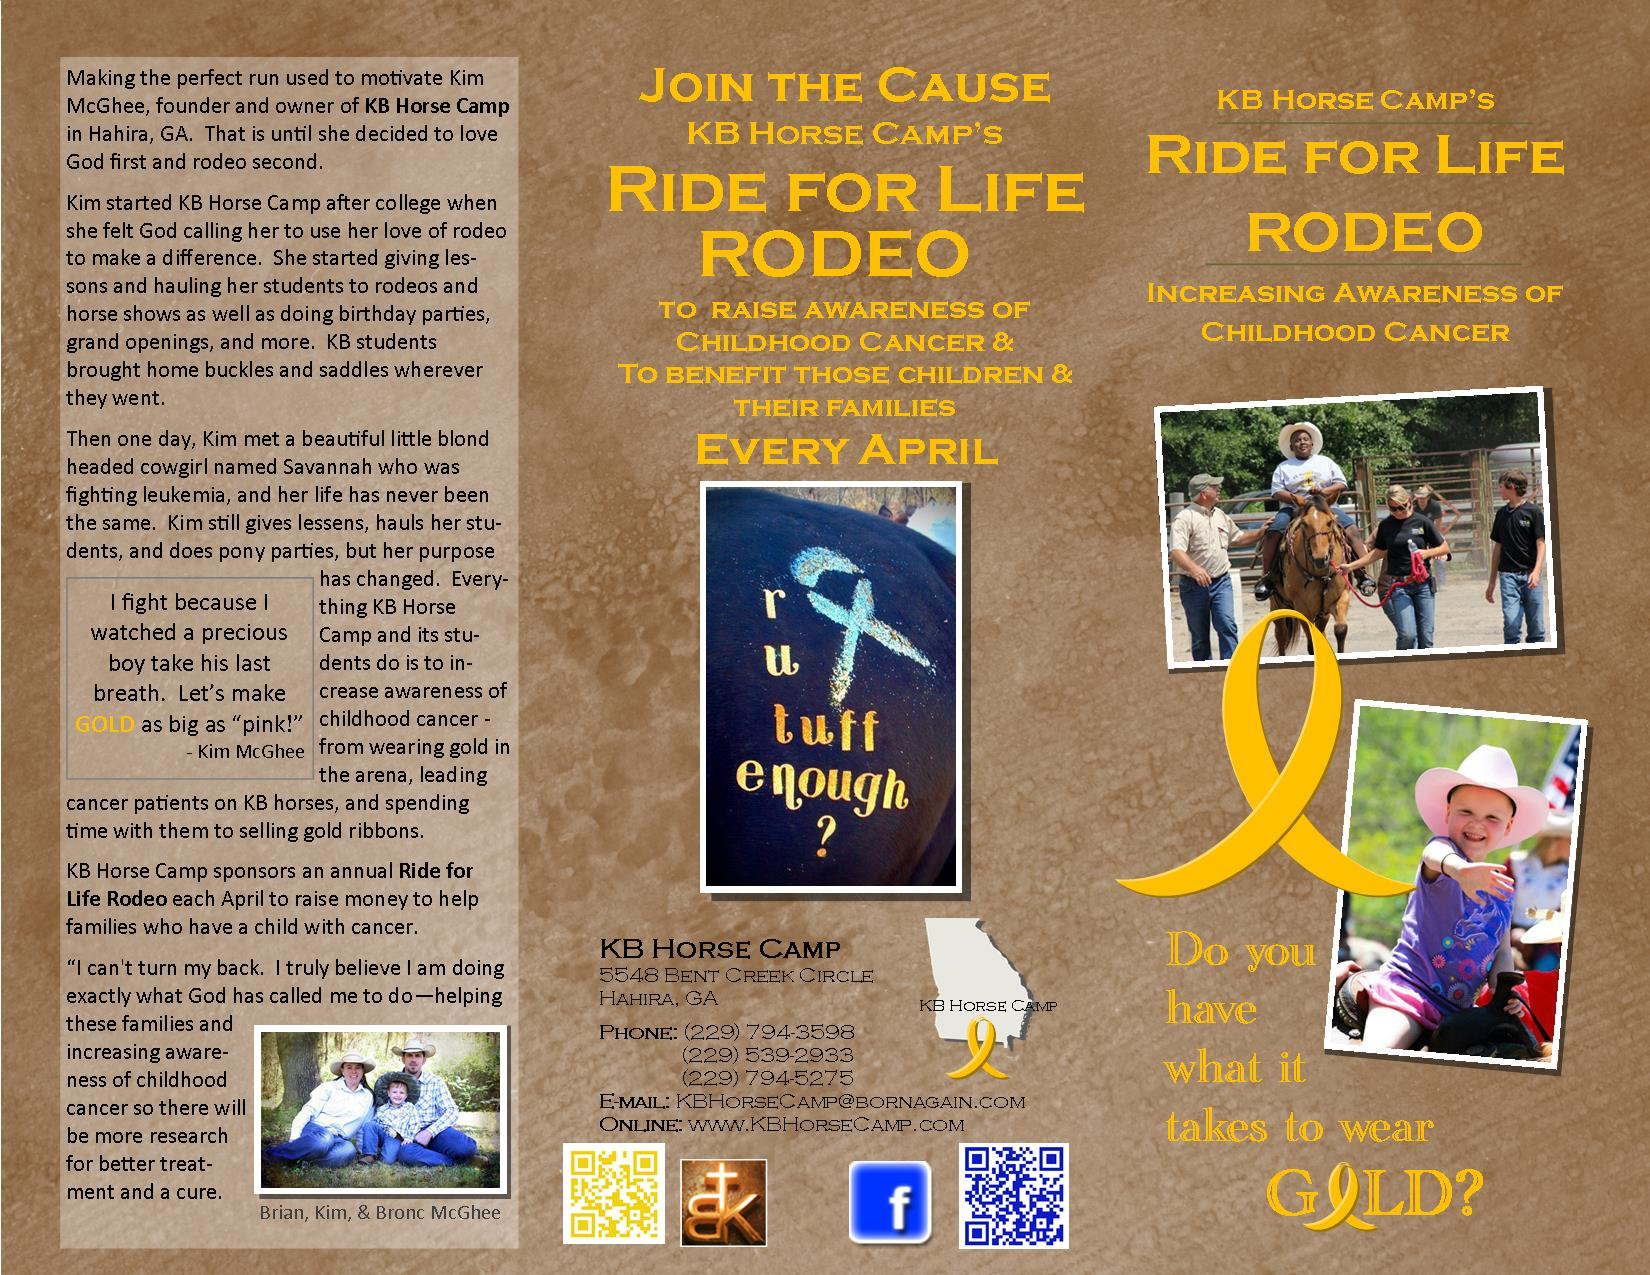 Ride for Life Rodeo